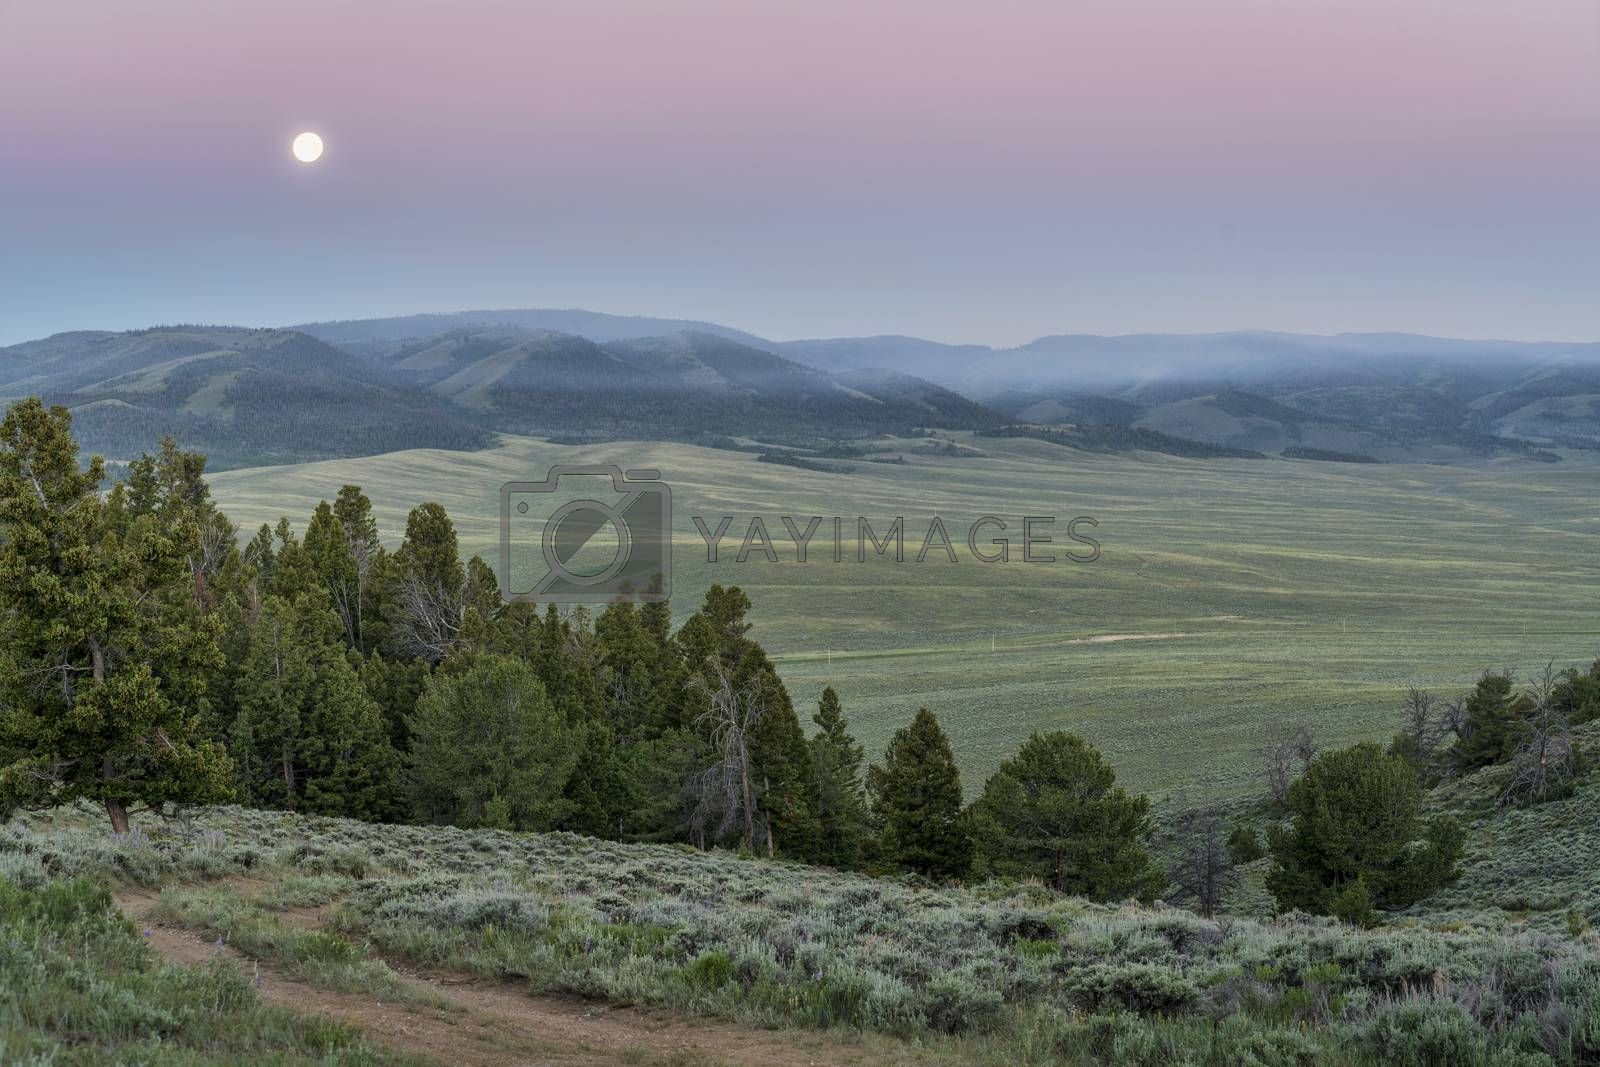 full moon setting at dawn over mountains covered by wildfire smoke - North Park, Colorado near Wyoming border (june 20, 2016)